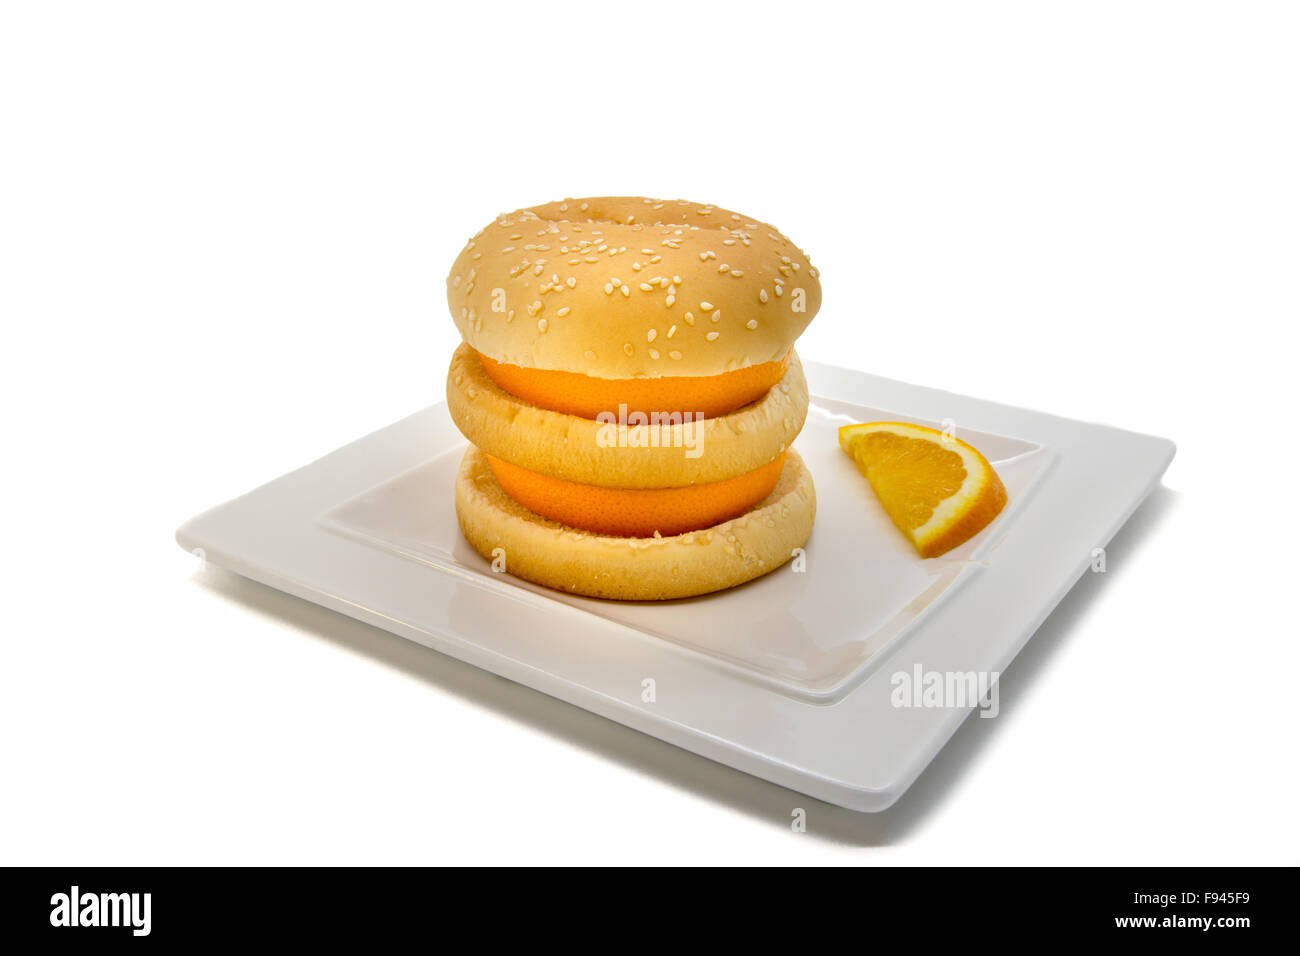 Burger with oranges on a white plate and background - Stock Image